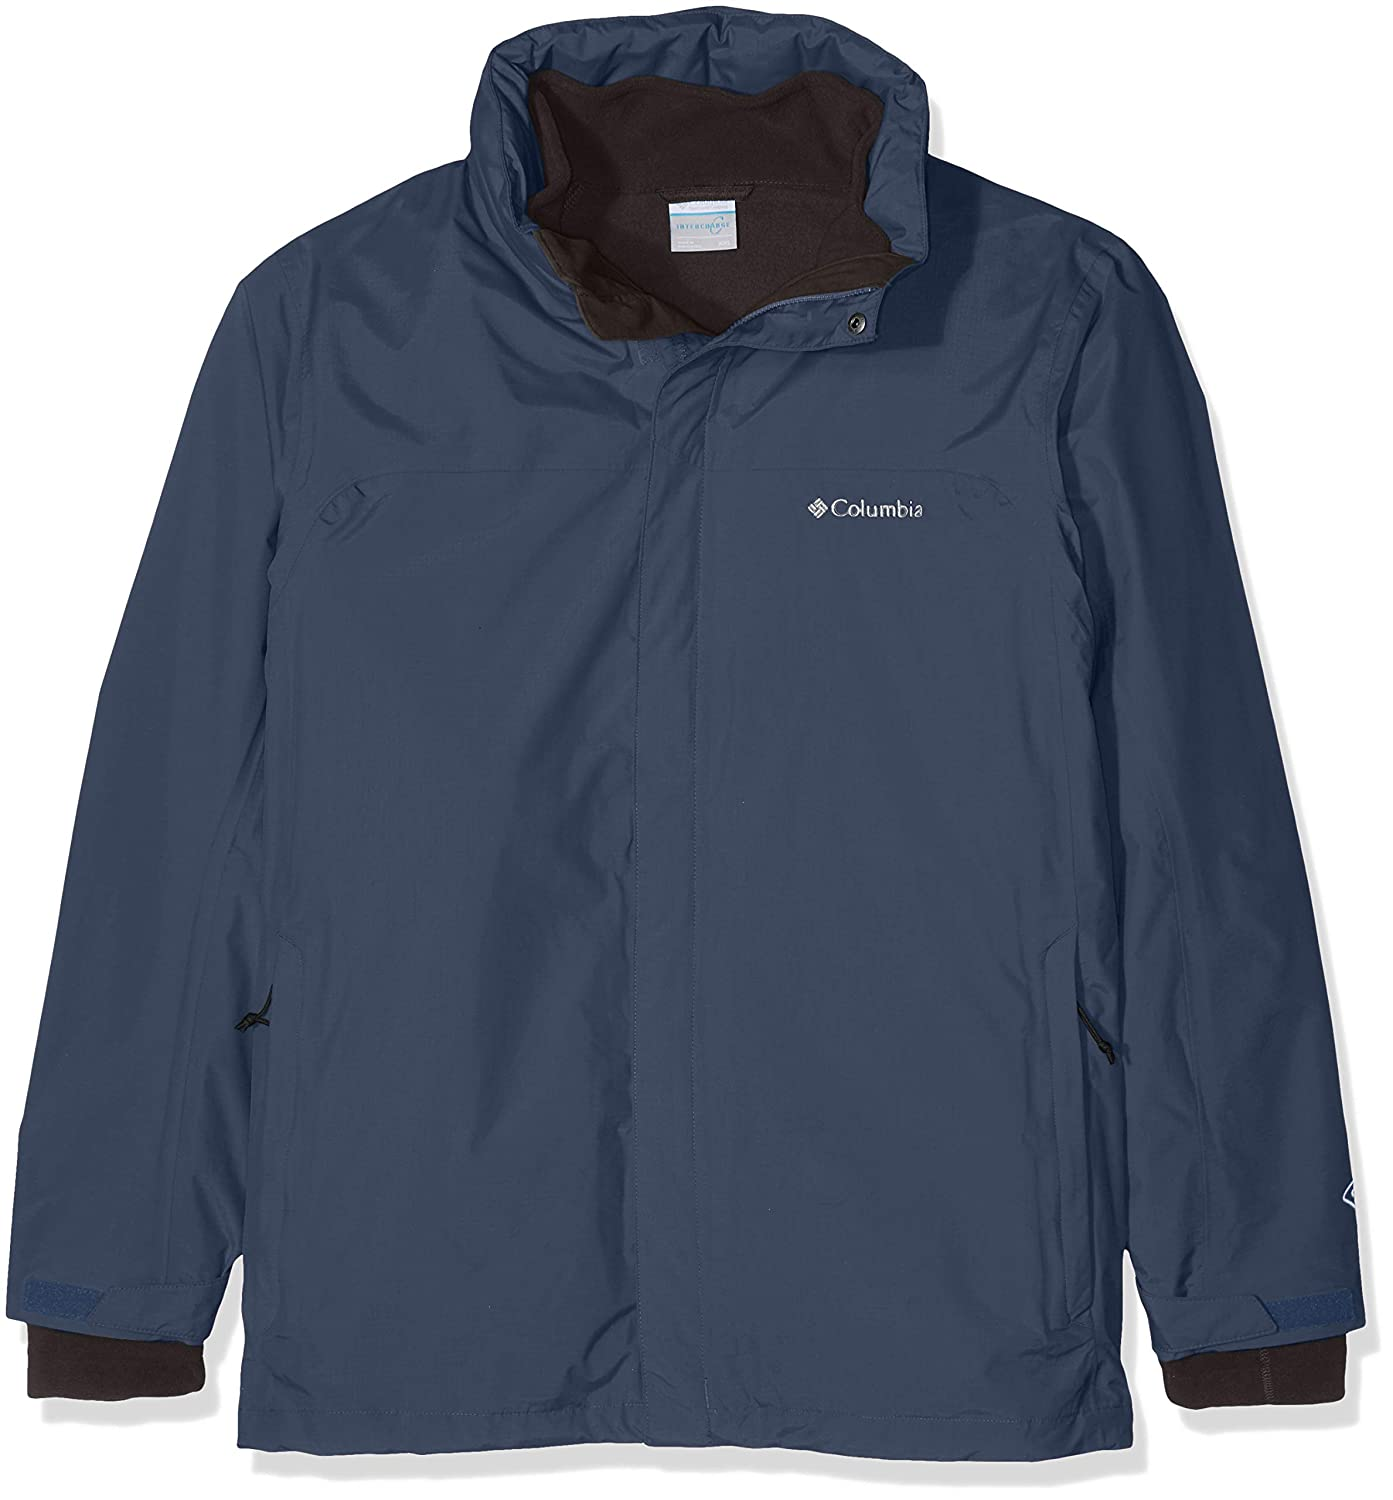 TALLA Talla M. Columbia Mission Air Interchange Jacket Chaqueta Impermeable, Poliéster, Hombre